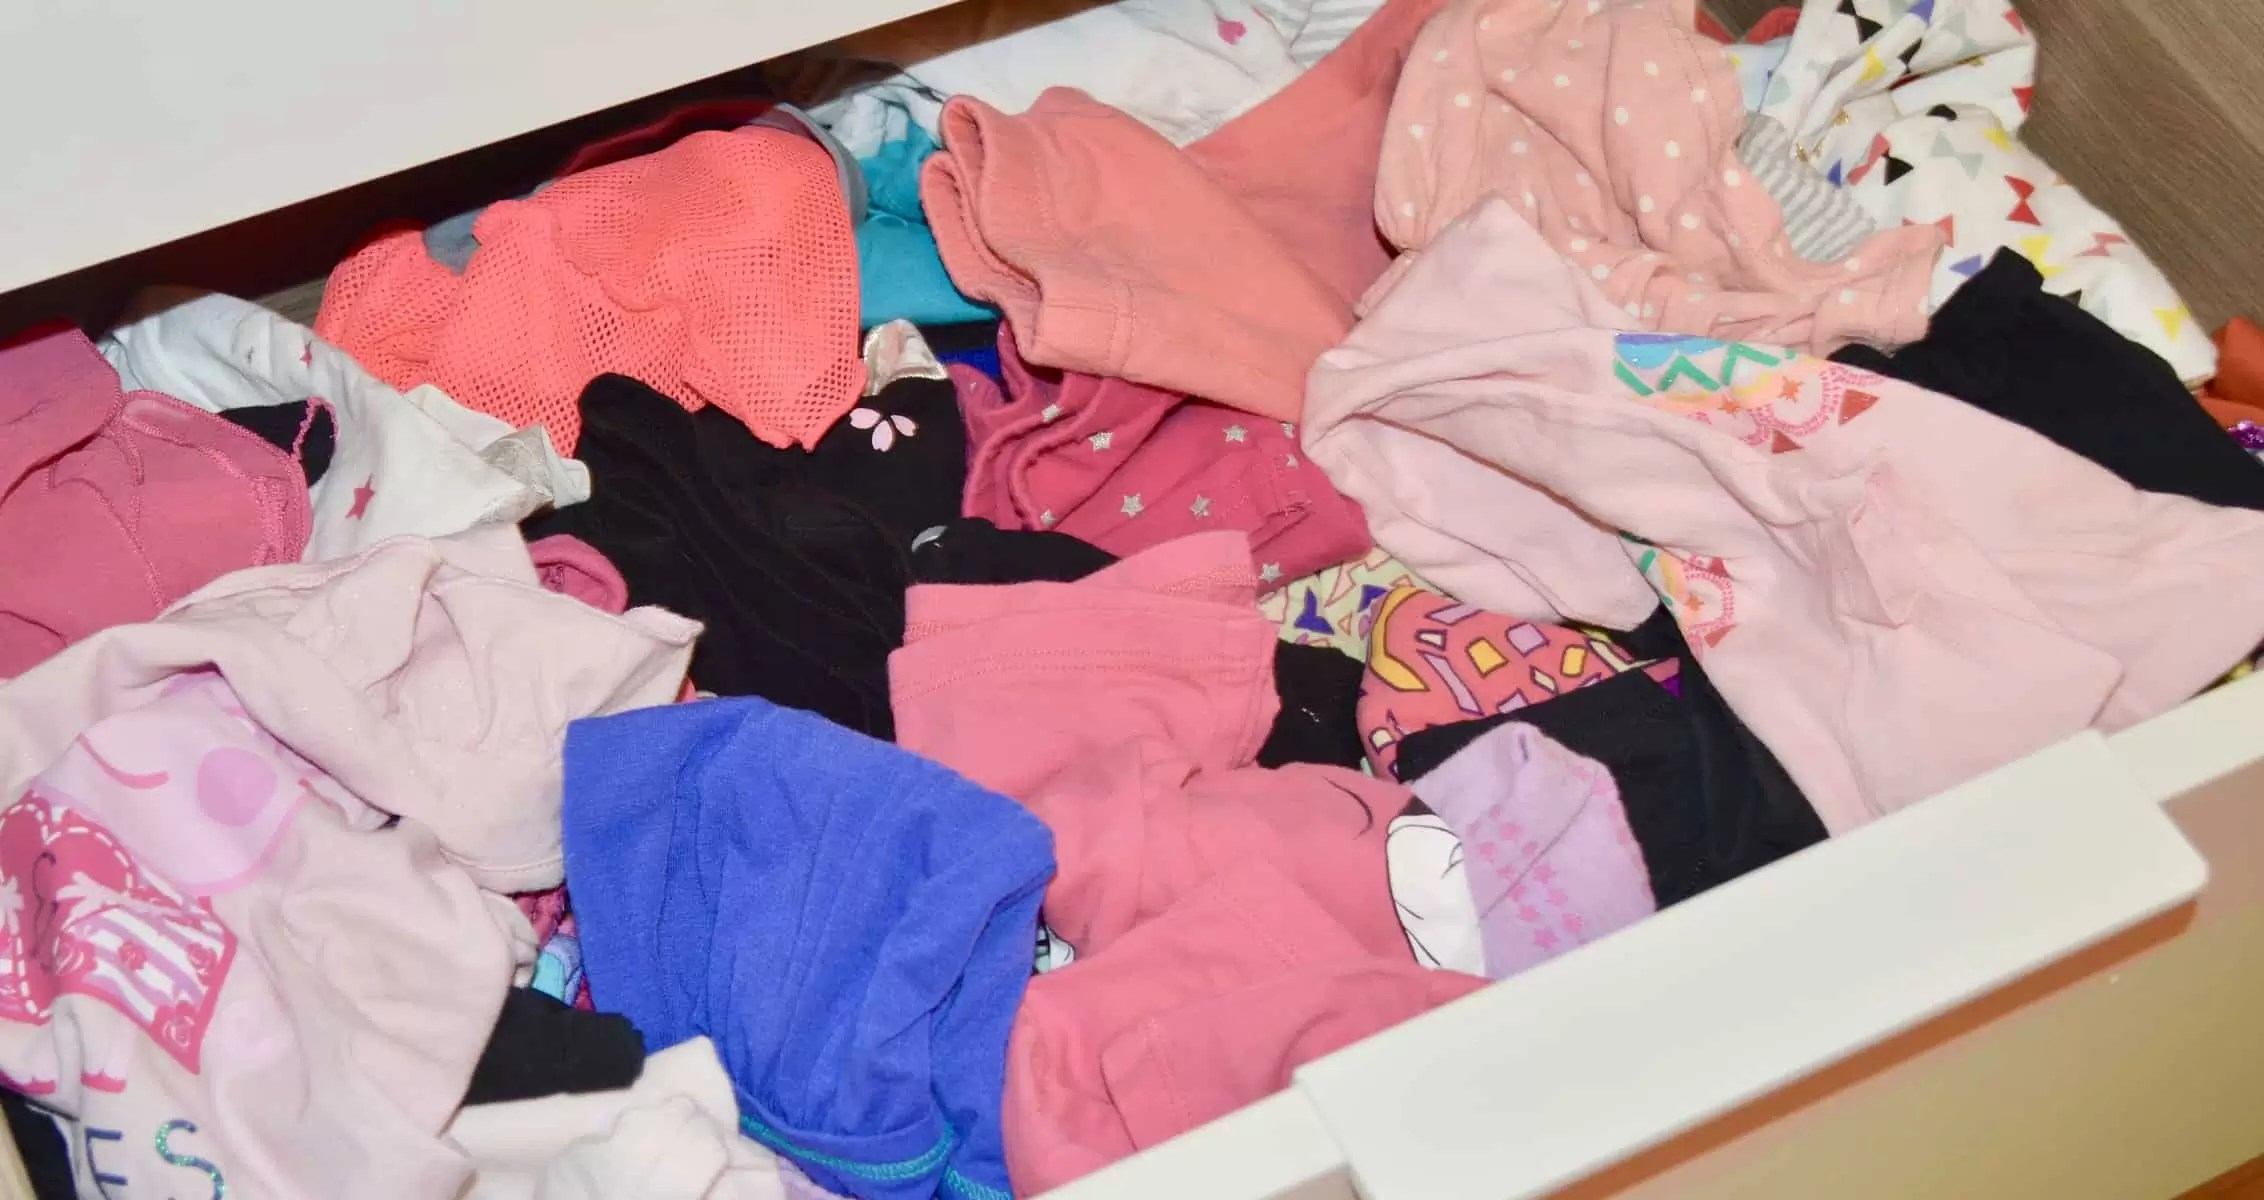 A drawer of messy unorganized girls clothes